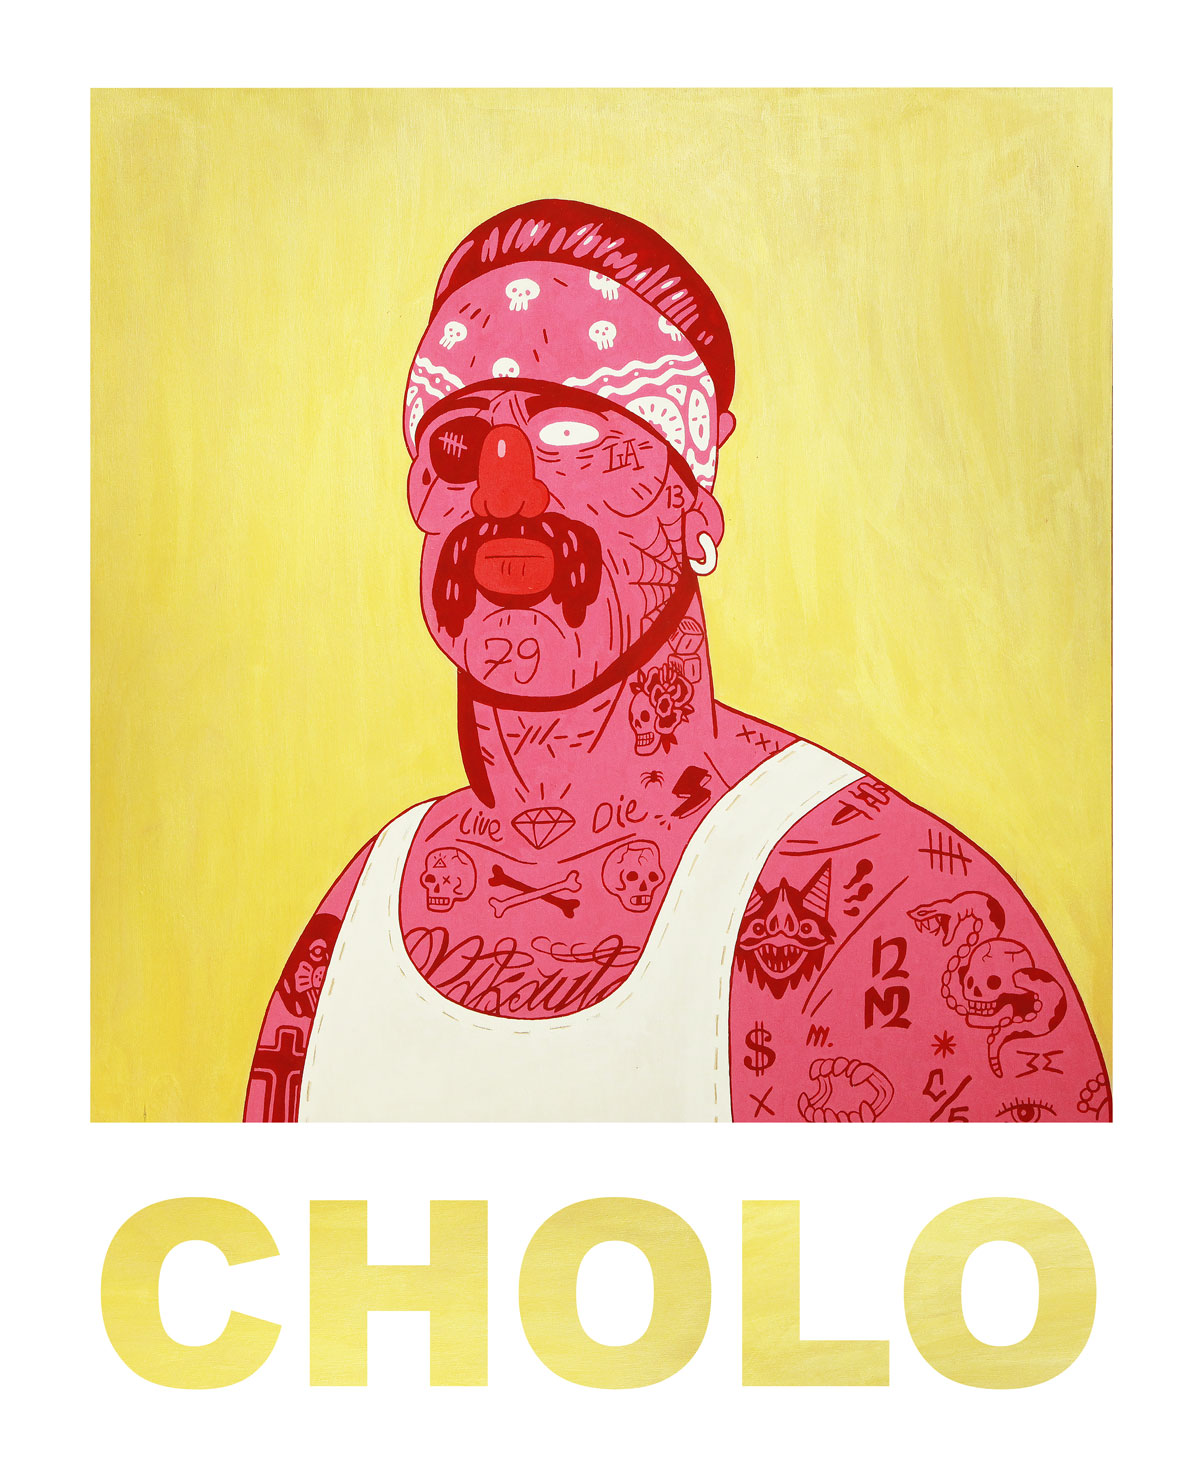 CHOLO - Gouache on wood